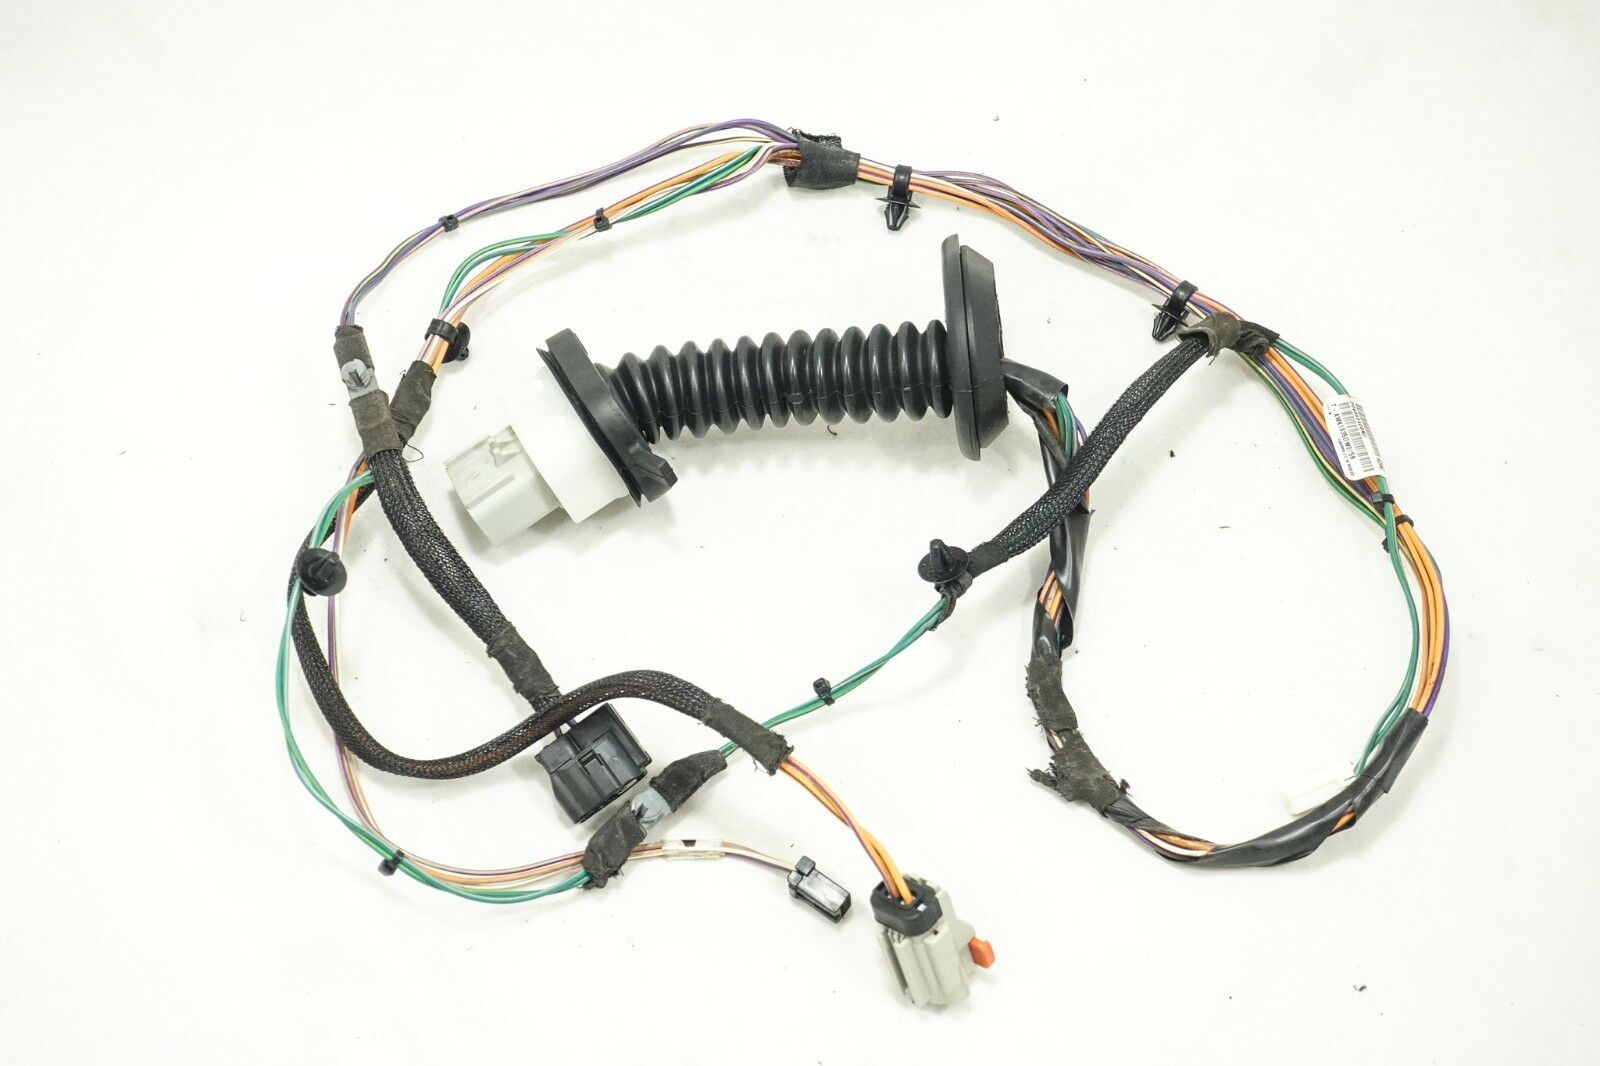 2004-2006 chrysler pacifica rear door wiring harness 04869409ae 04869409ad